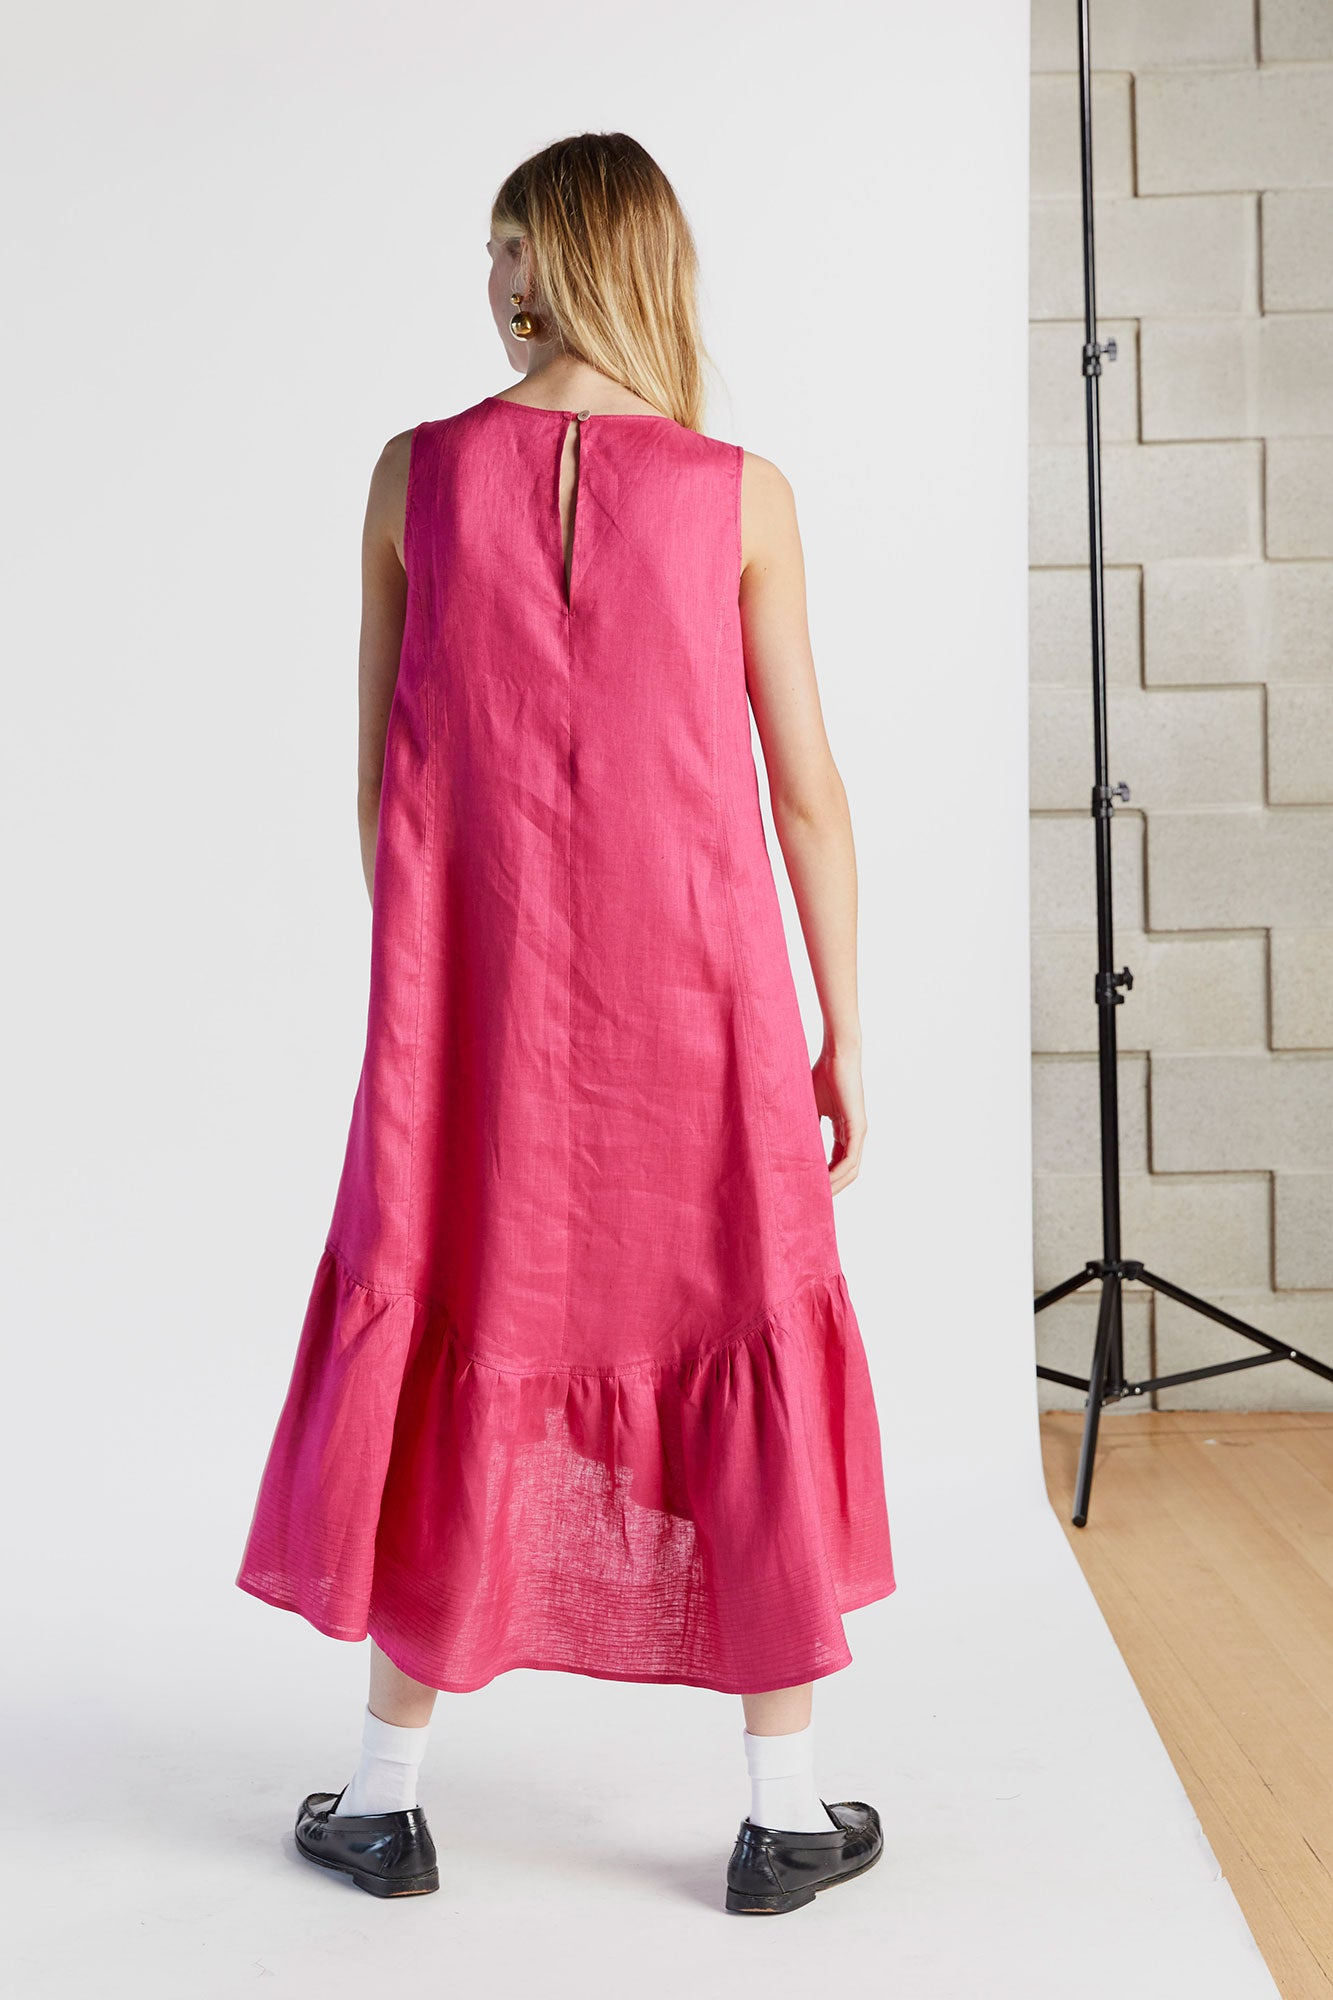 Mind Your Manners Milly Dress in Hot Pink - hej hej